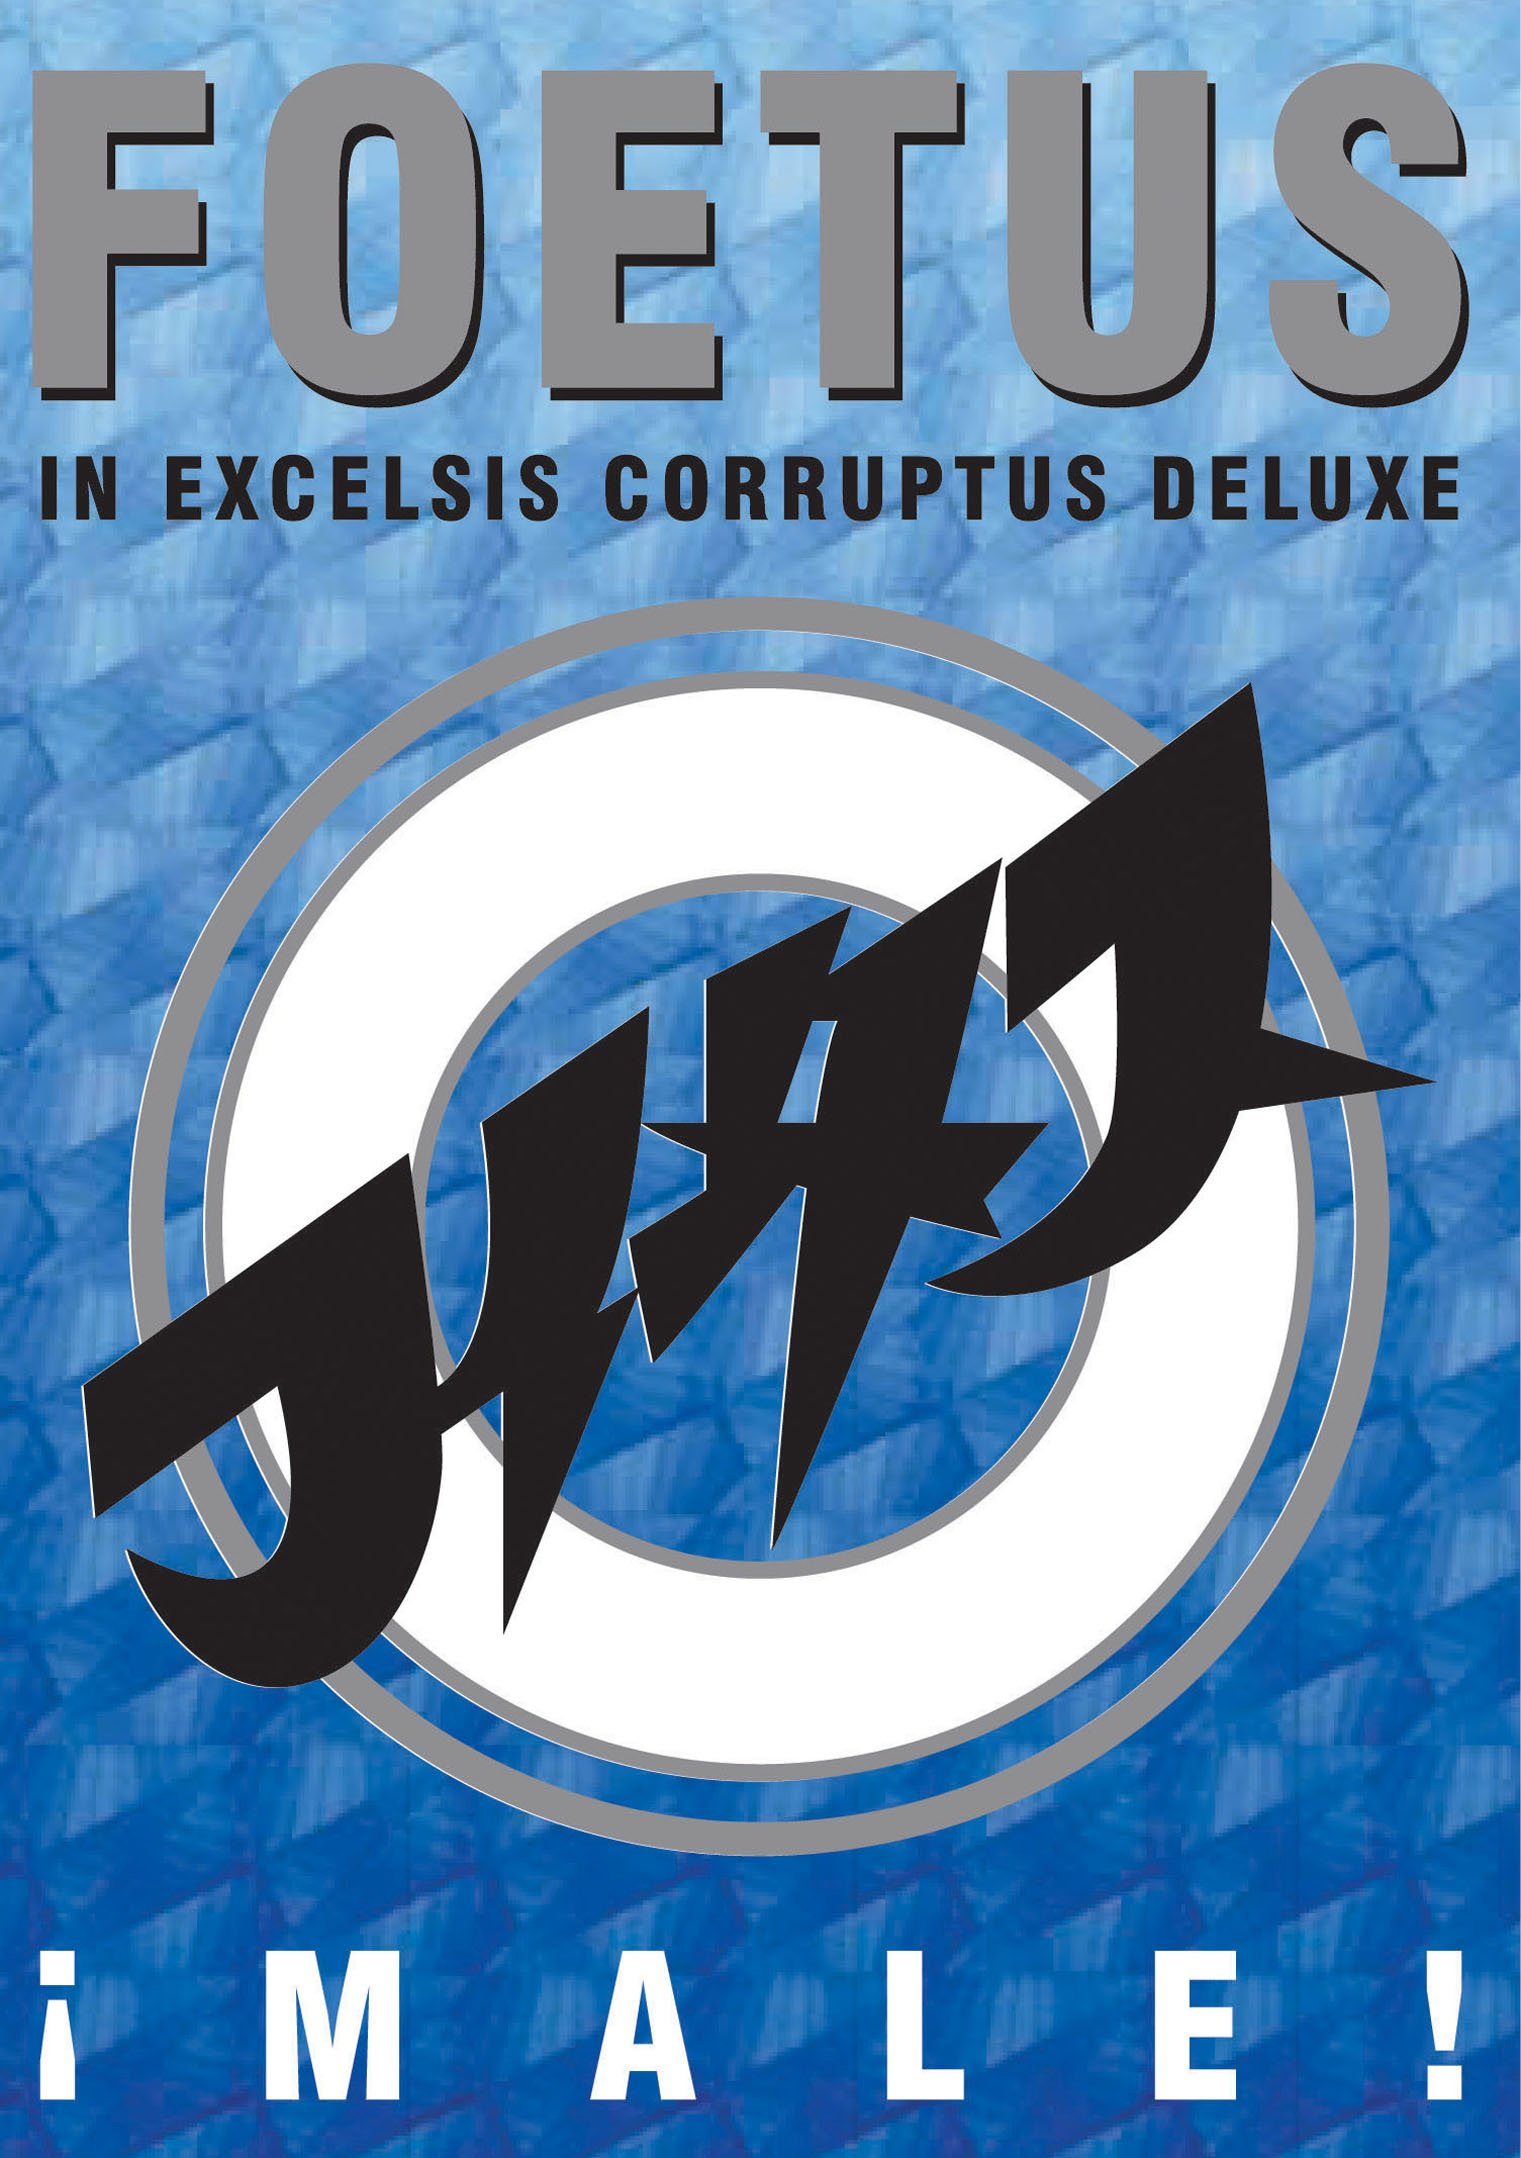 Foetus - Male Live - In Excelsis Corruptus Deluxe